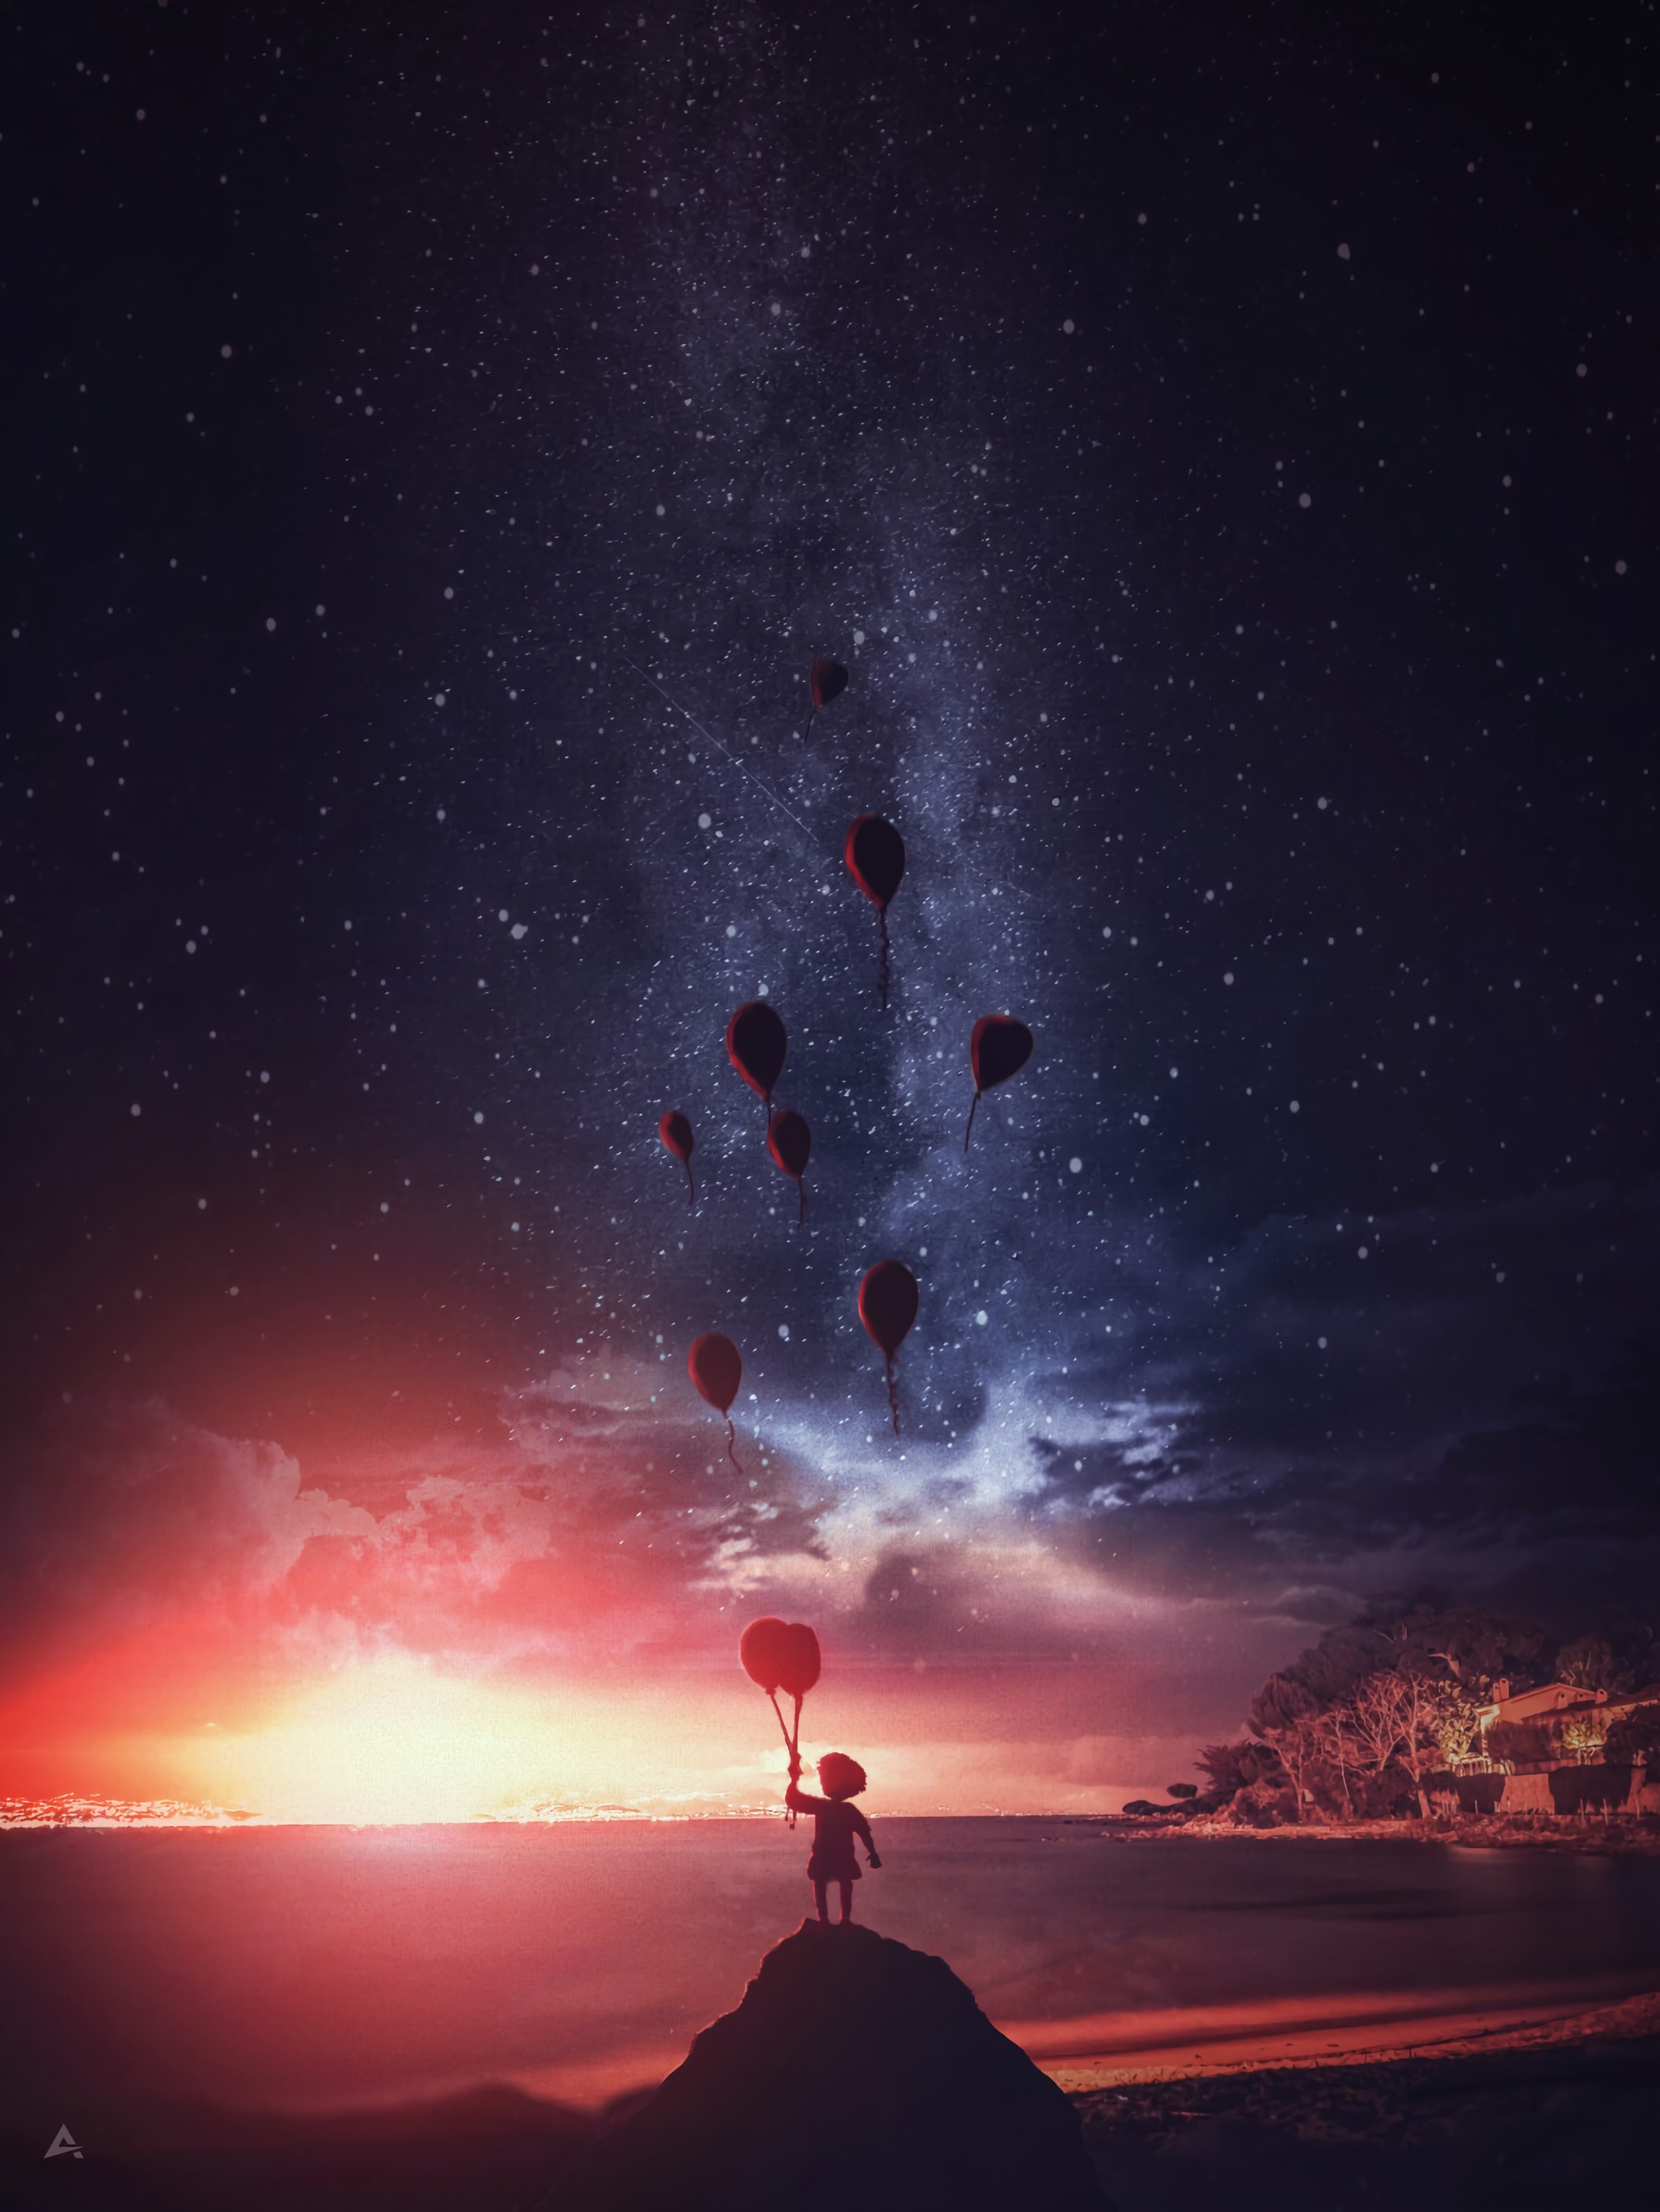 156041 Screensavers and Wallpapers Balloons for phone. Download Night, Balloons, Dark, Silhouette, Miscellanea, Miscellaneous, Child, Air Balloons pictures for free